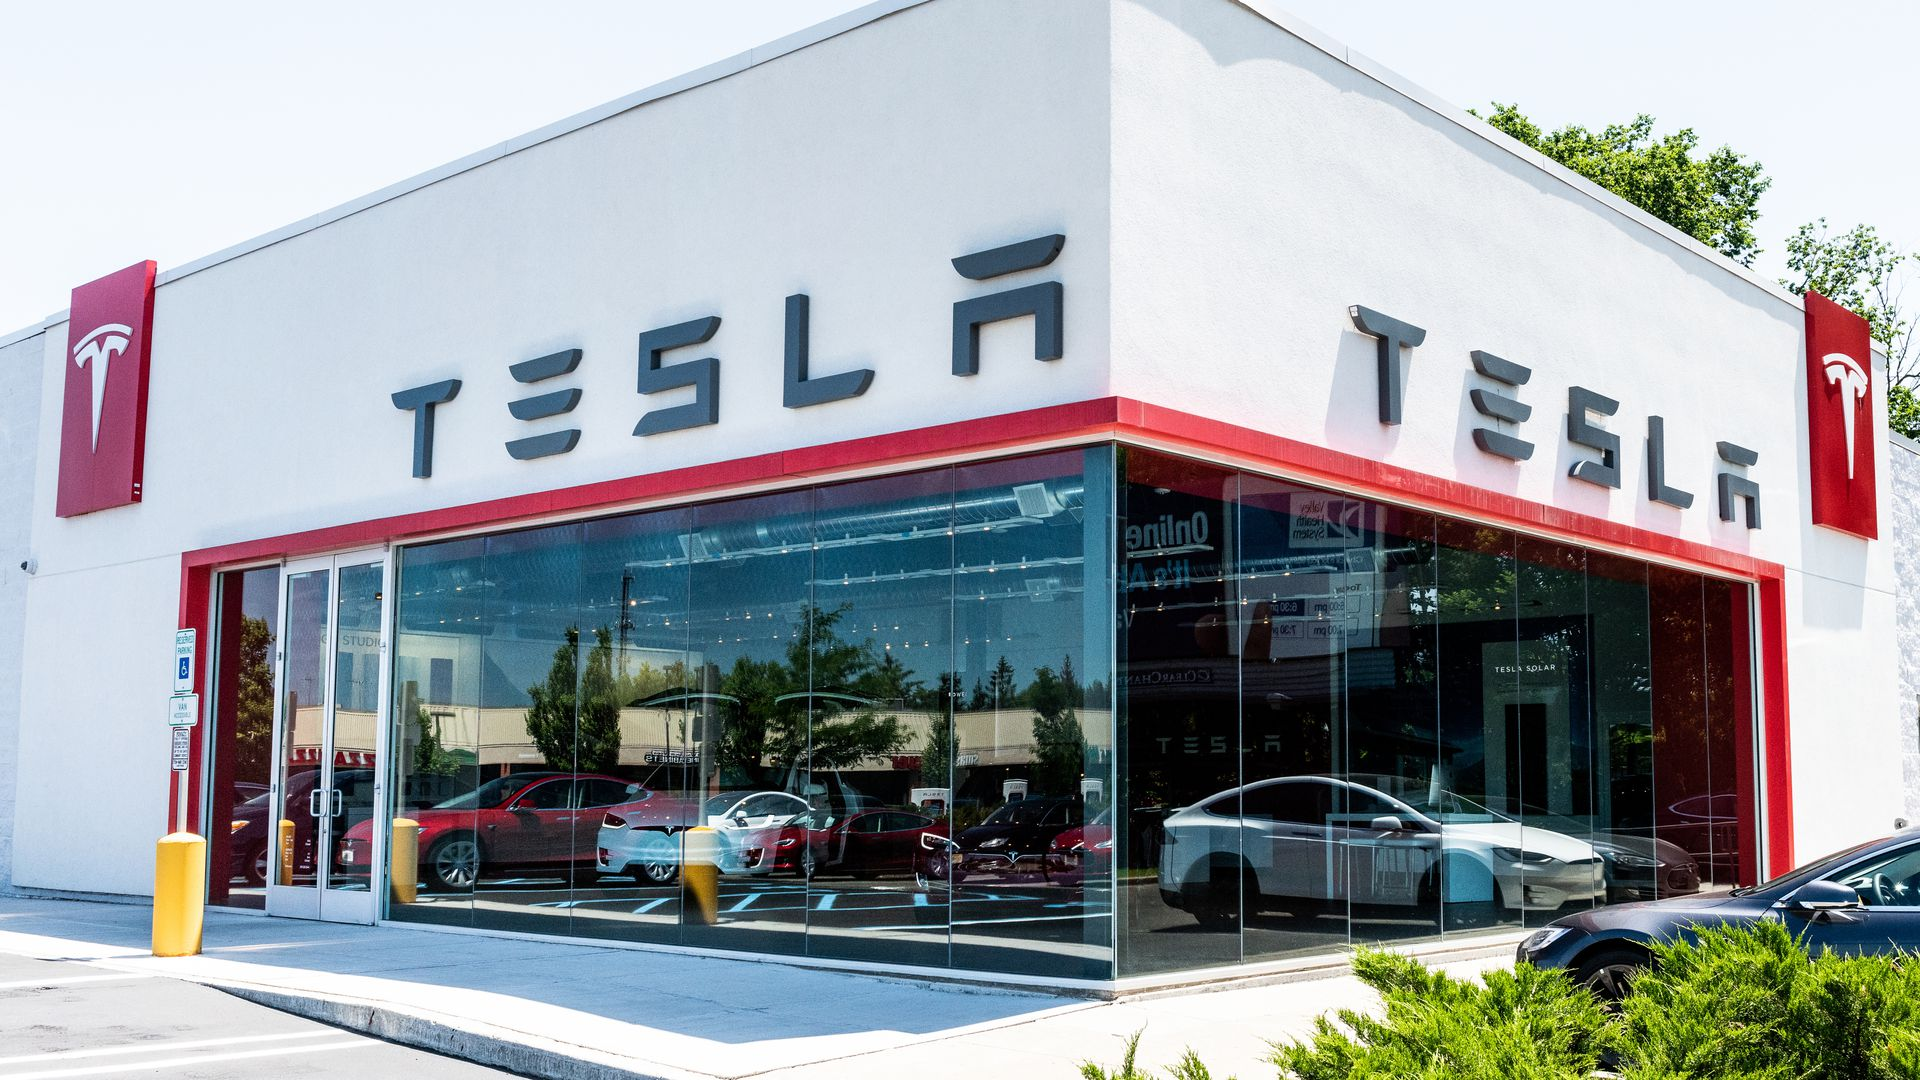 Tesla is closing all its stores so you can have a $35K Model 3